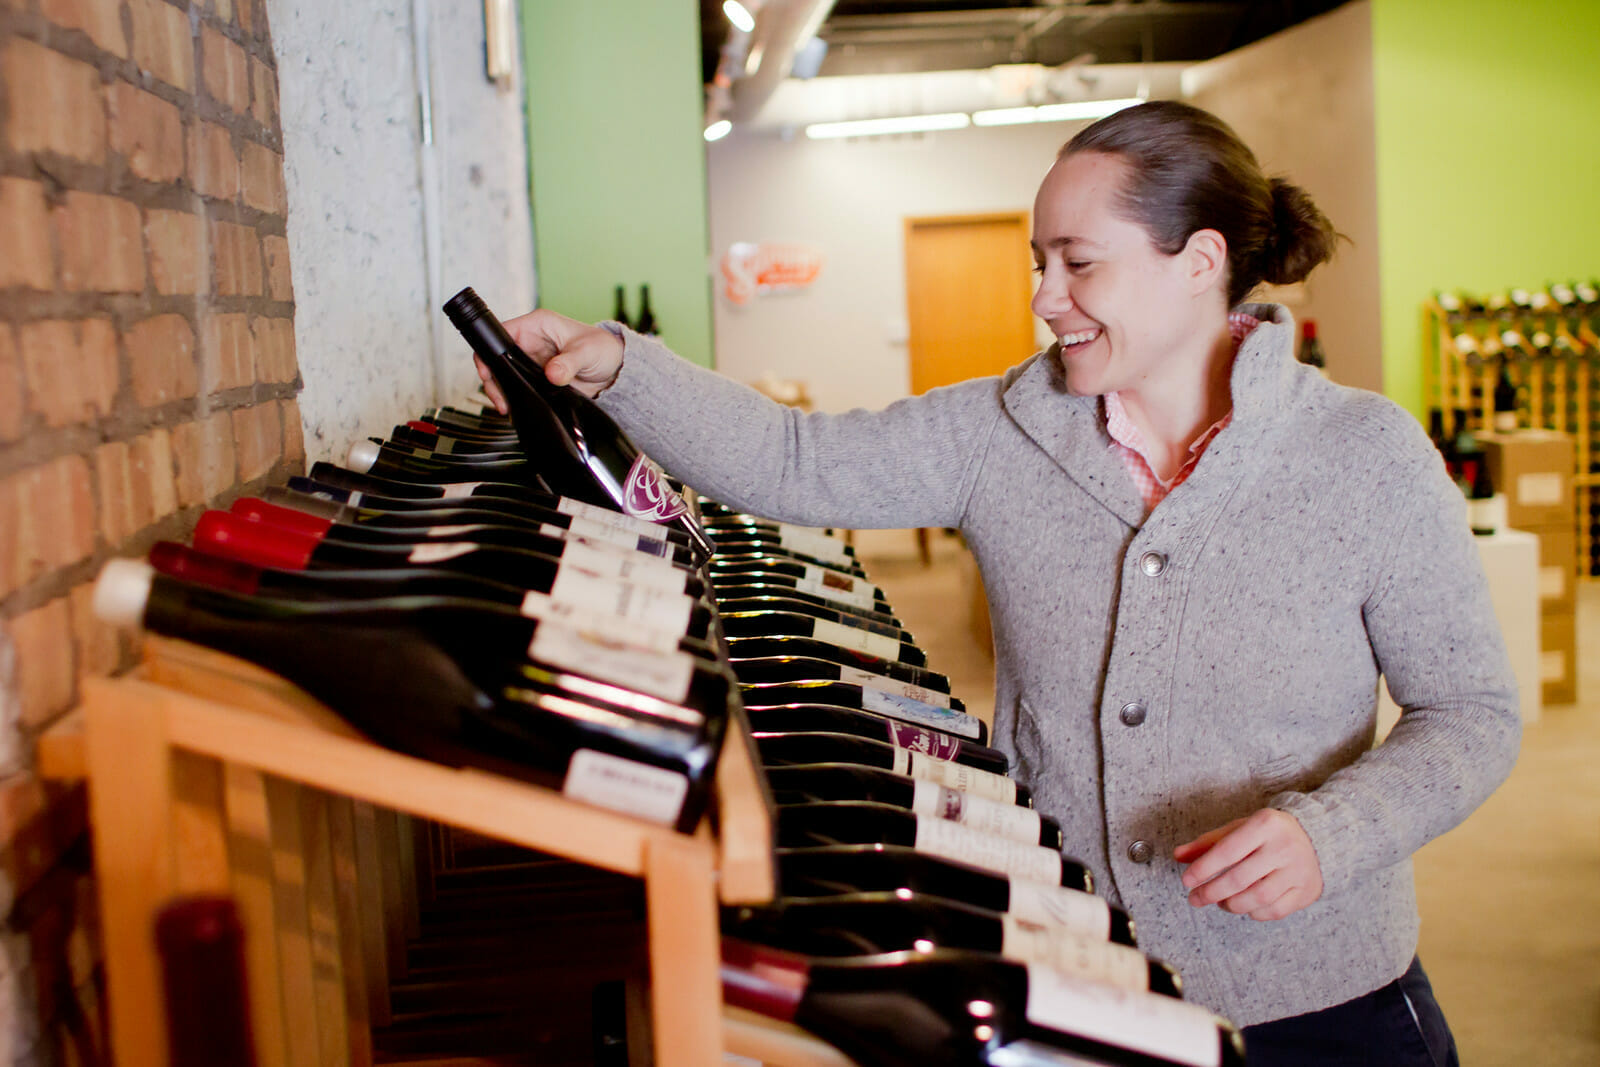 Andrea selecting wine